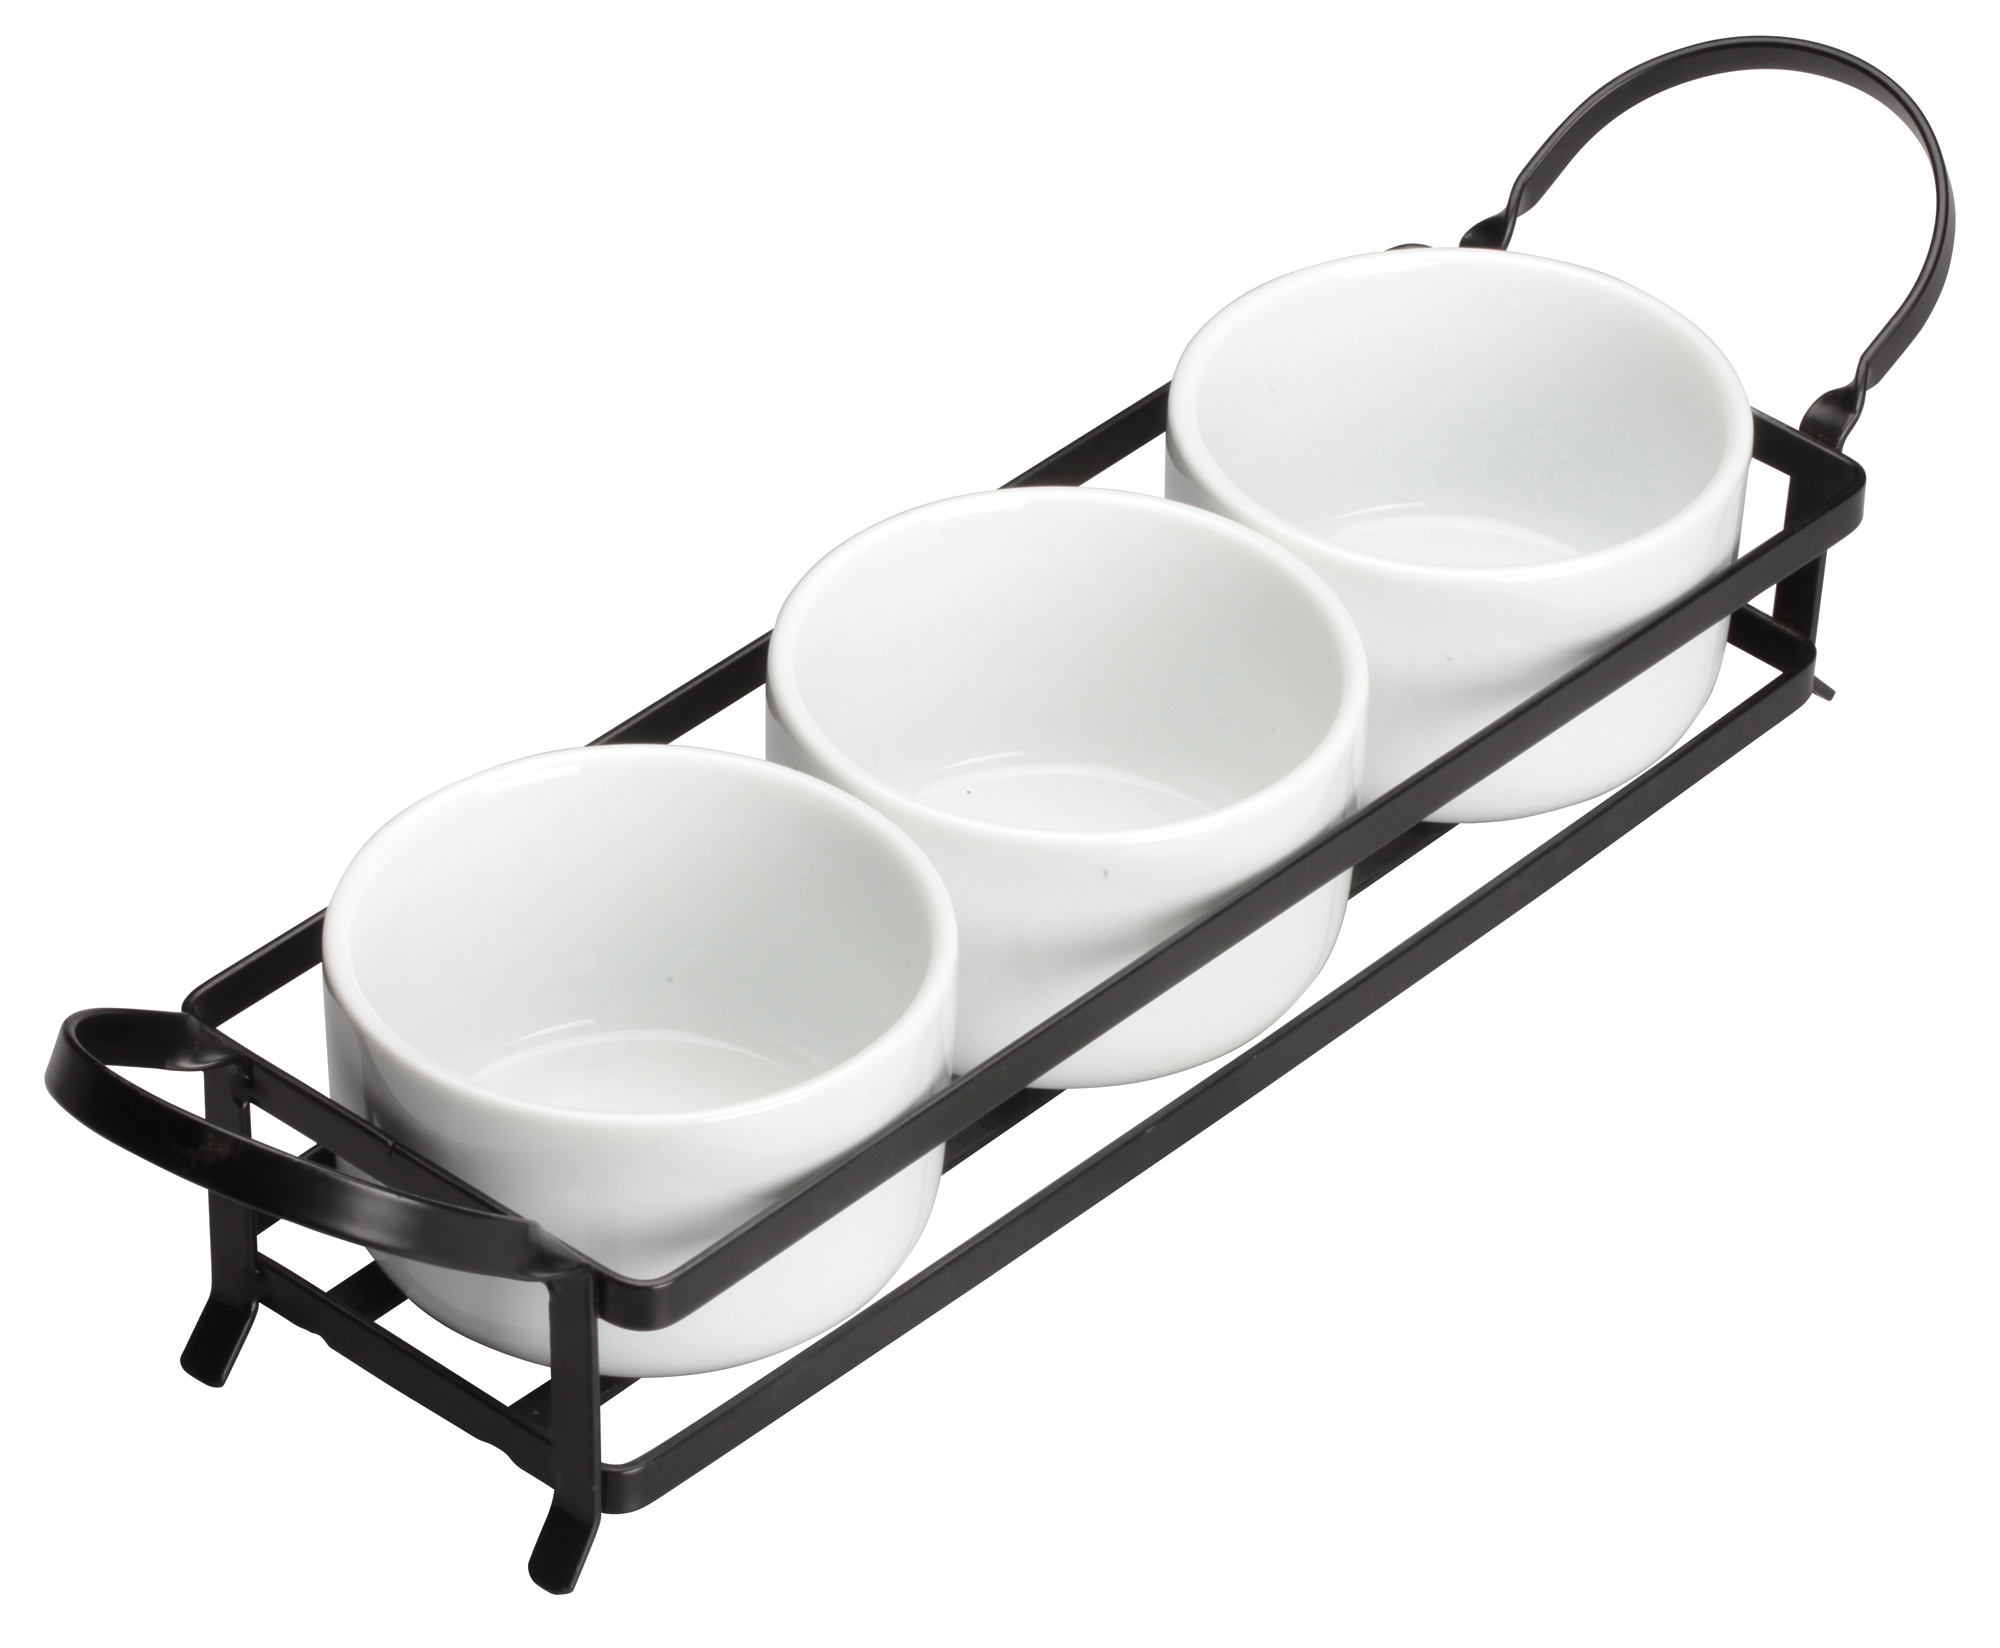 Winco WDP014-101 bowl set